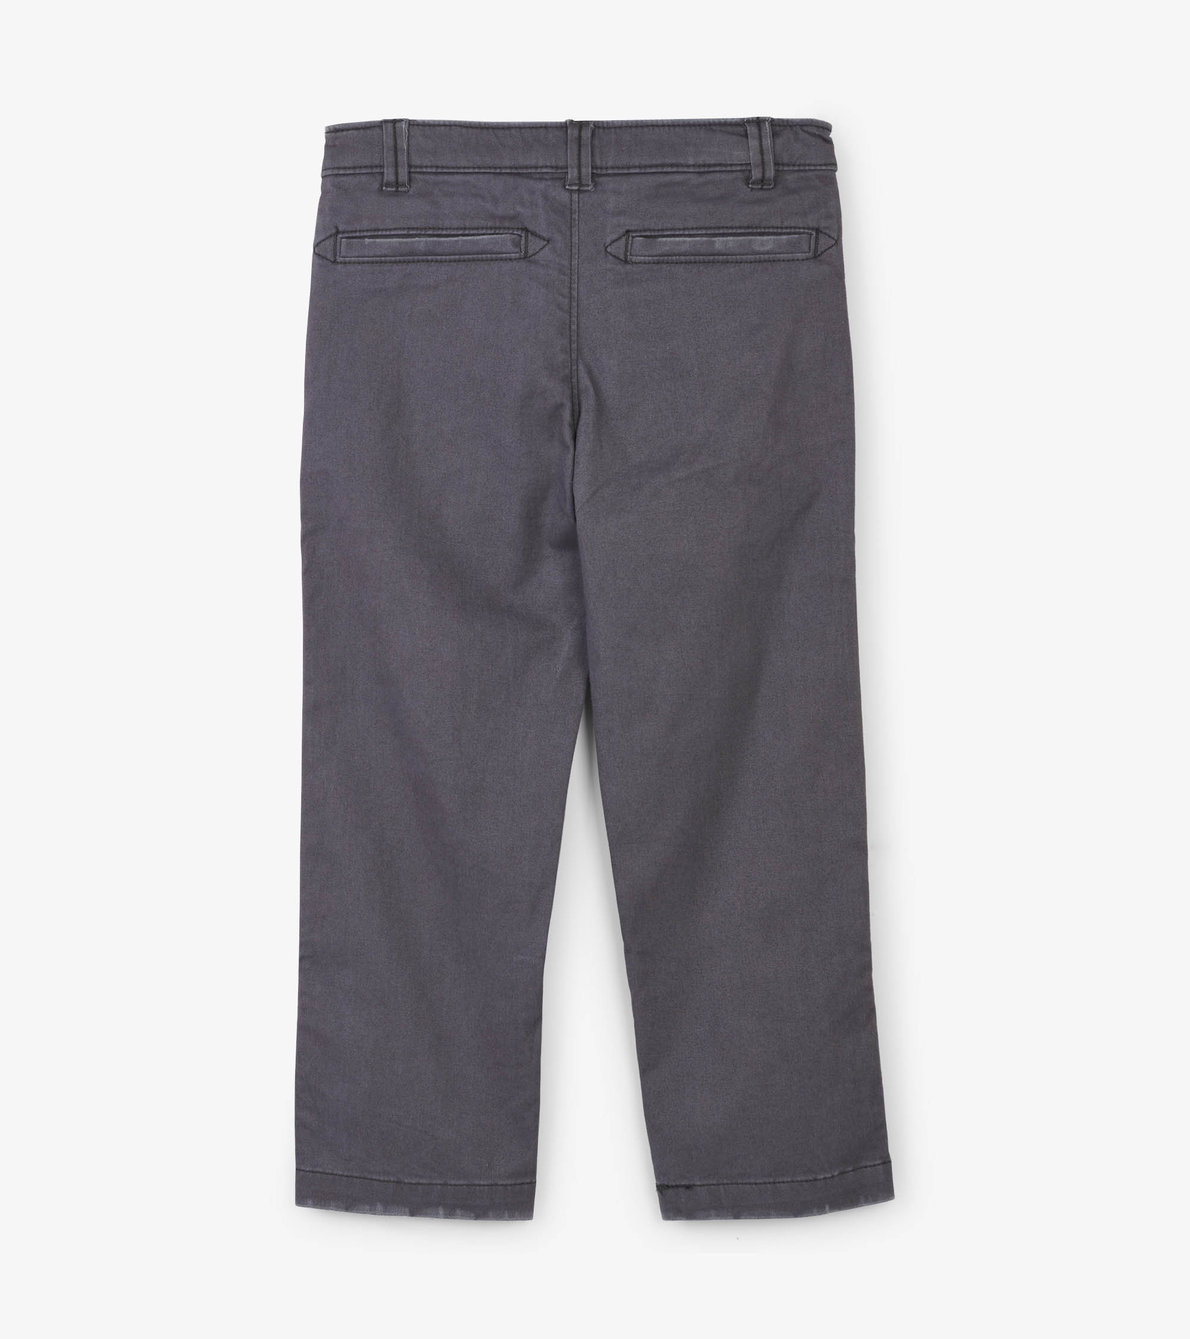 View larger image of Grey Stretch Twill Pants